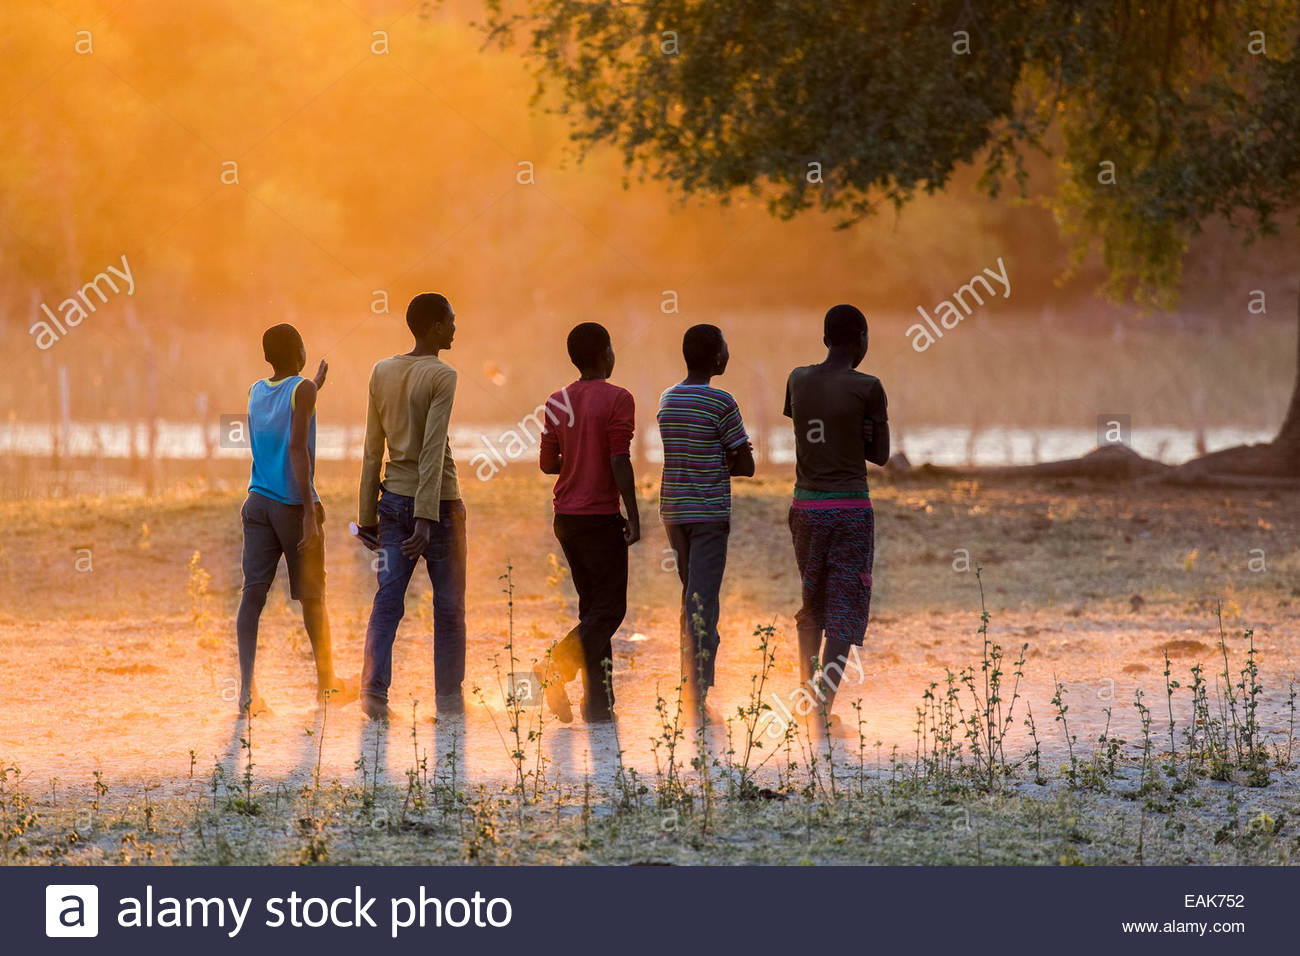 Youths taking an evening stroll, Okavango Delta, North-West District, Botswana - Stock Image